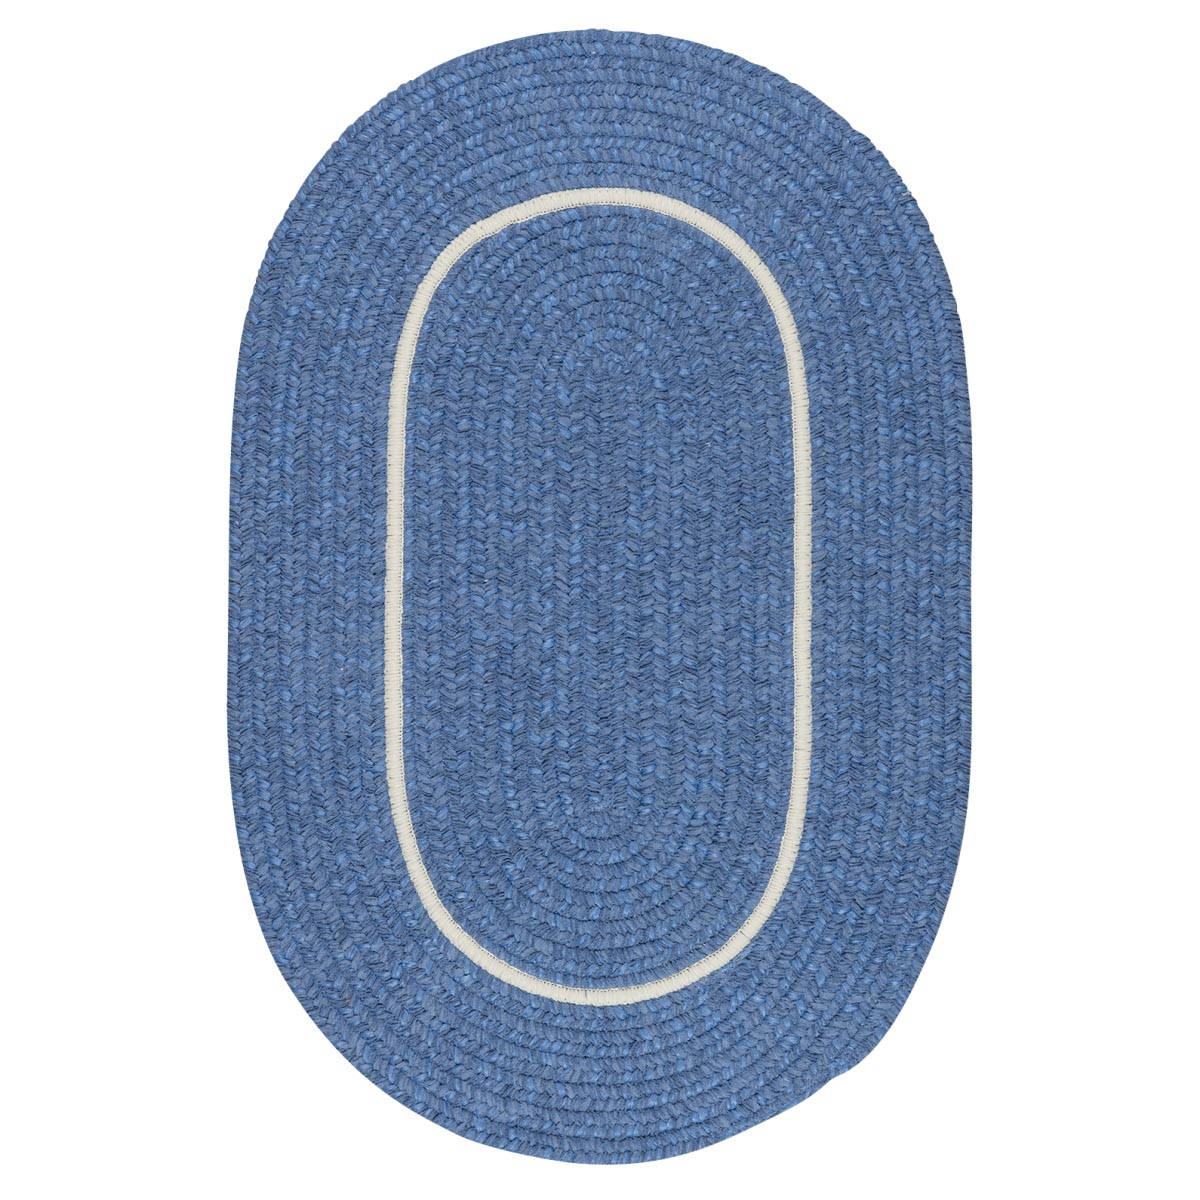 Silhouette Blue Ice Outdoor Braided Oval Rugs